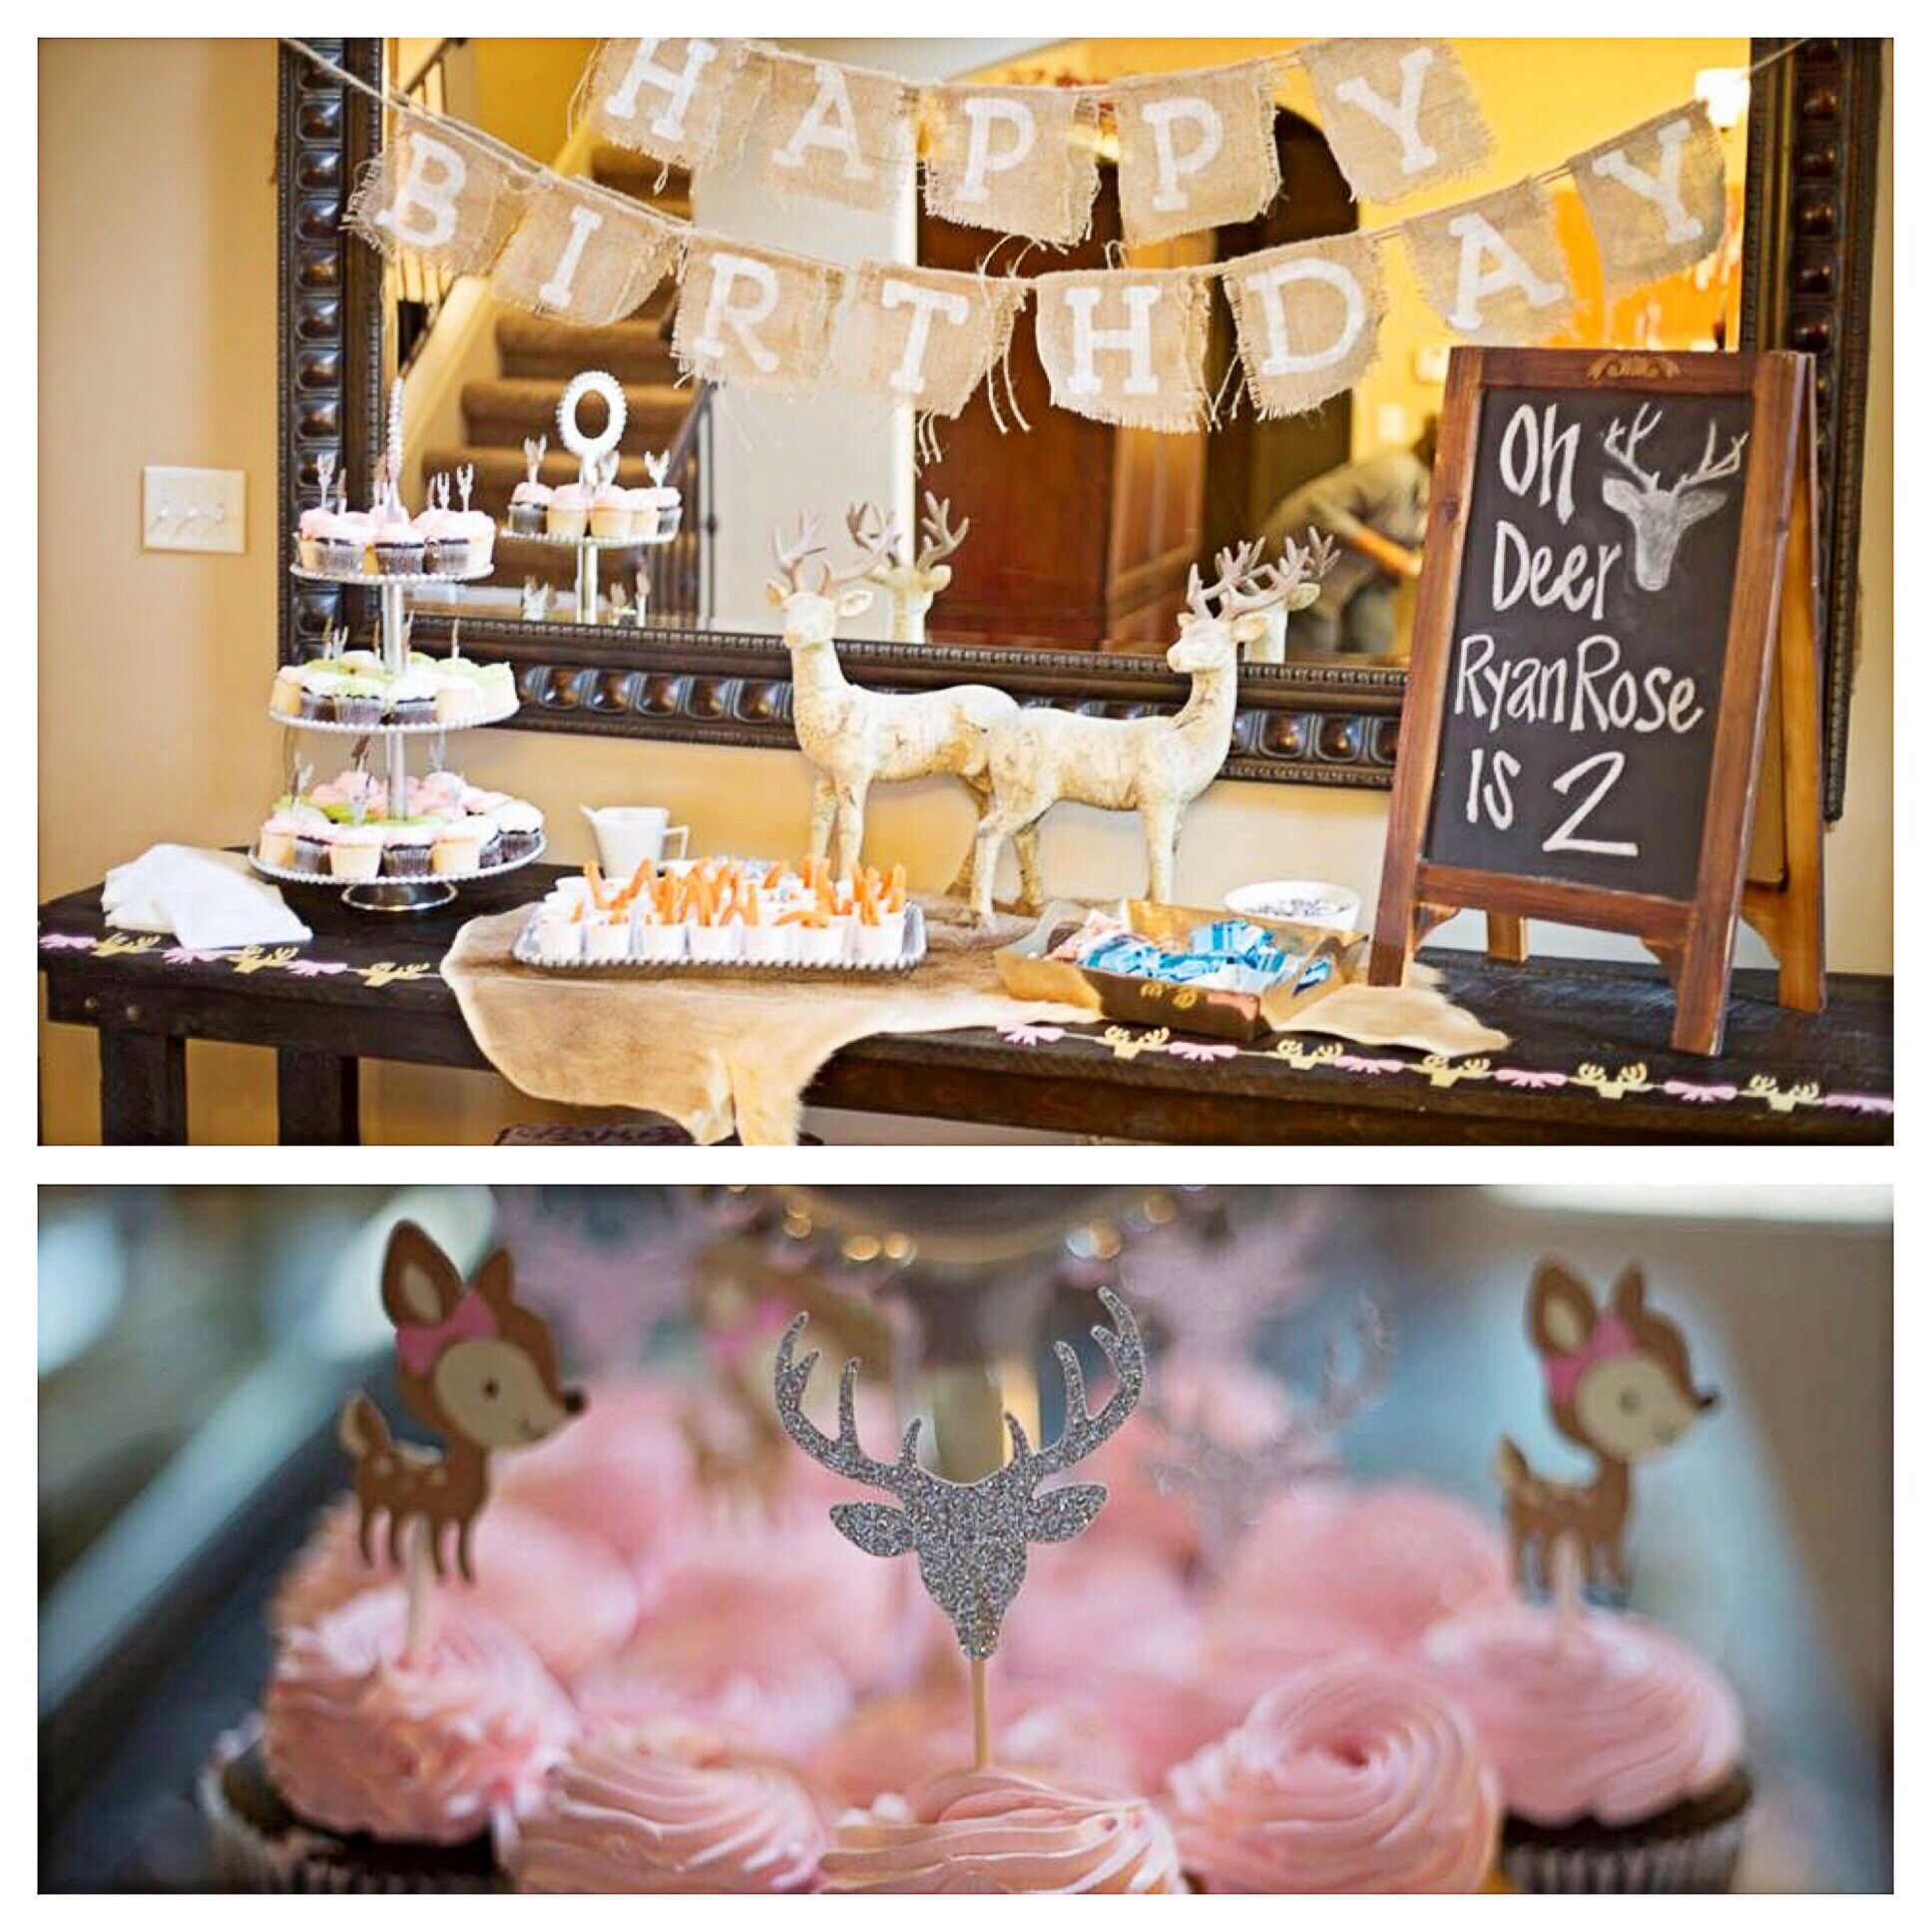 Oh Deer Ryan Rose is two Birthday Party Ideas Pinterest